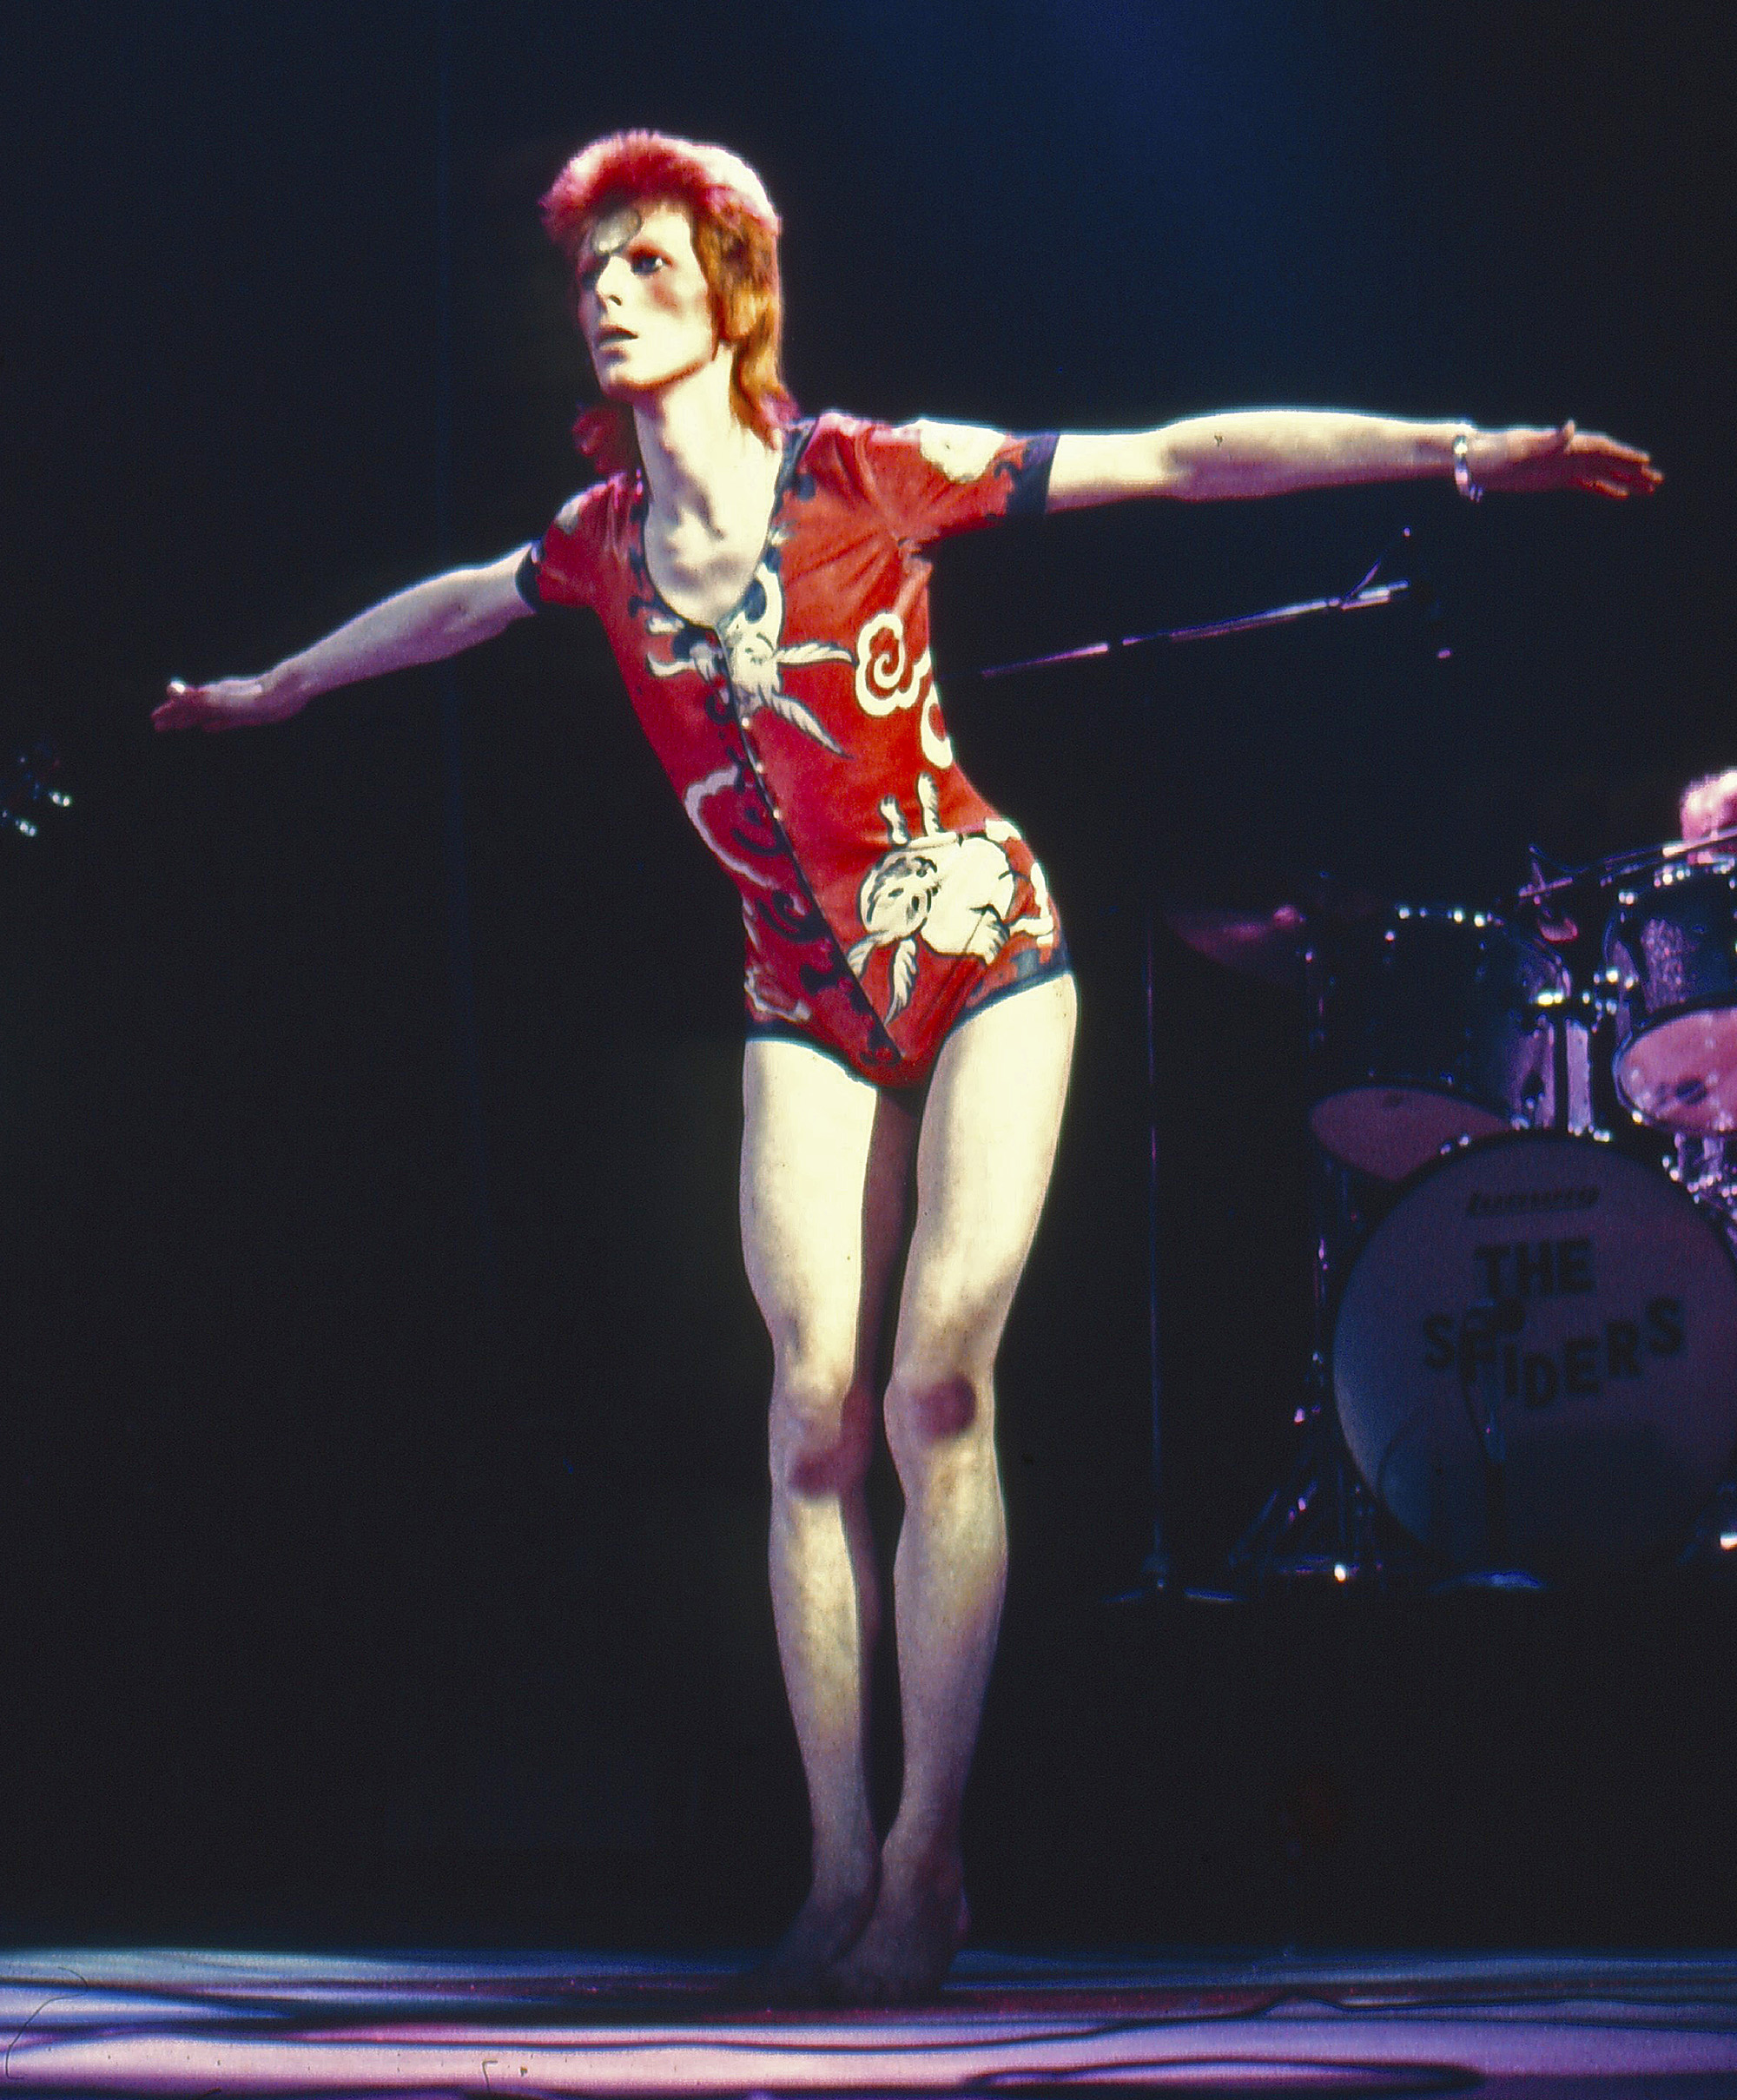 Mandatory Credit: Photo by Ilpo Musto/Rex / Rex USA ( 754280h )  David Bowie in concert at Earl's Court  David Bowie on the Ziggy Stardust World Tour with the Spiders from Mars, London, Britain - 1973